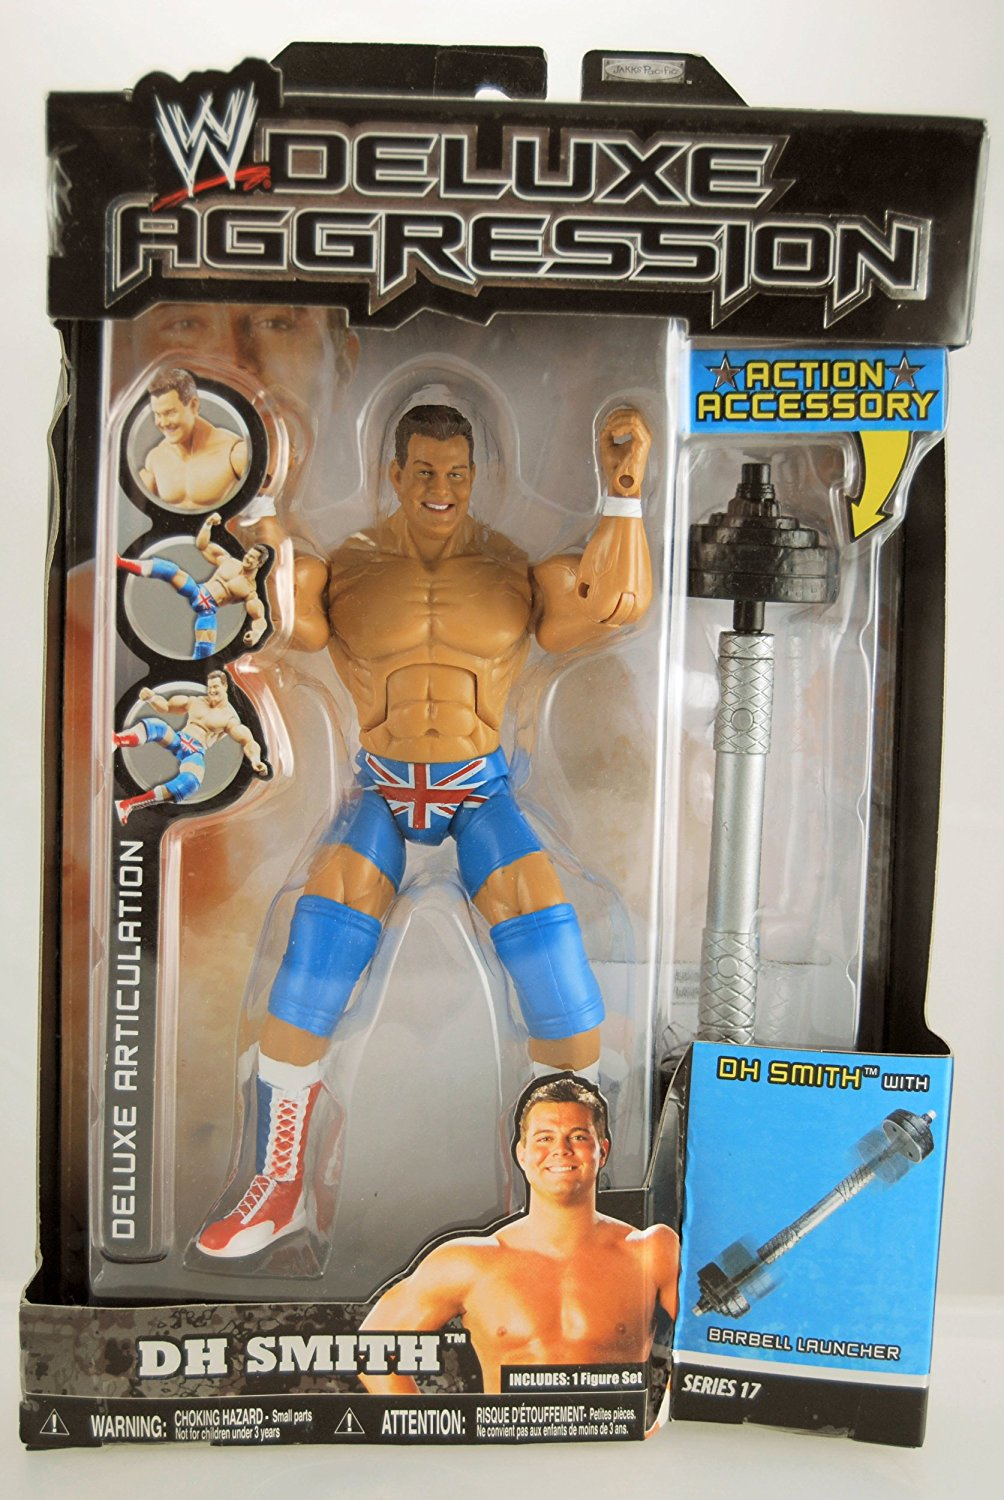 WWE - 2008 - Deluxe Aggression Series 17 - DH Smith Action Figure - w/ Barbell Launcher - Limited Edition - Collectible